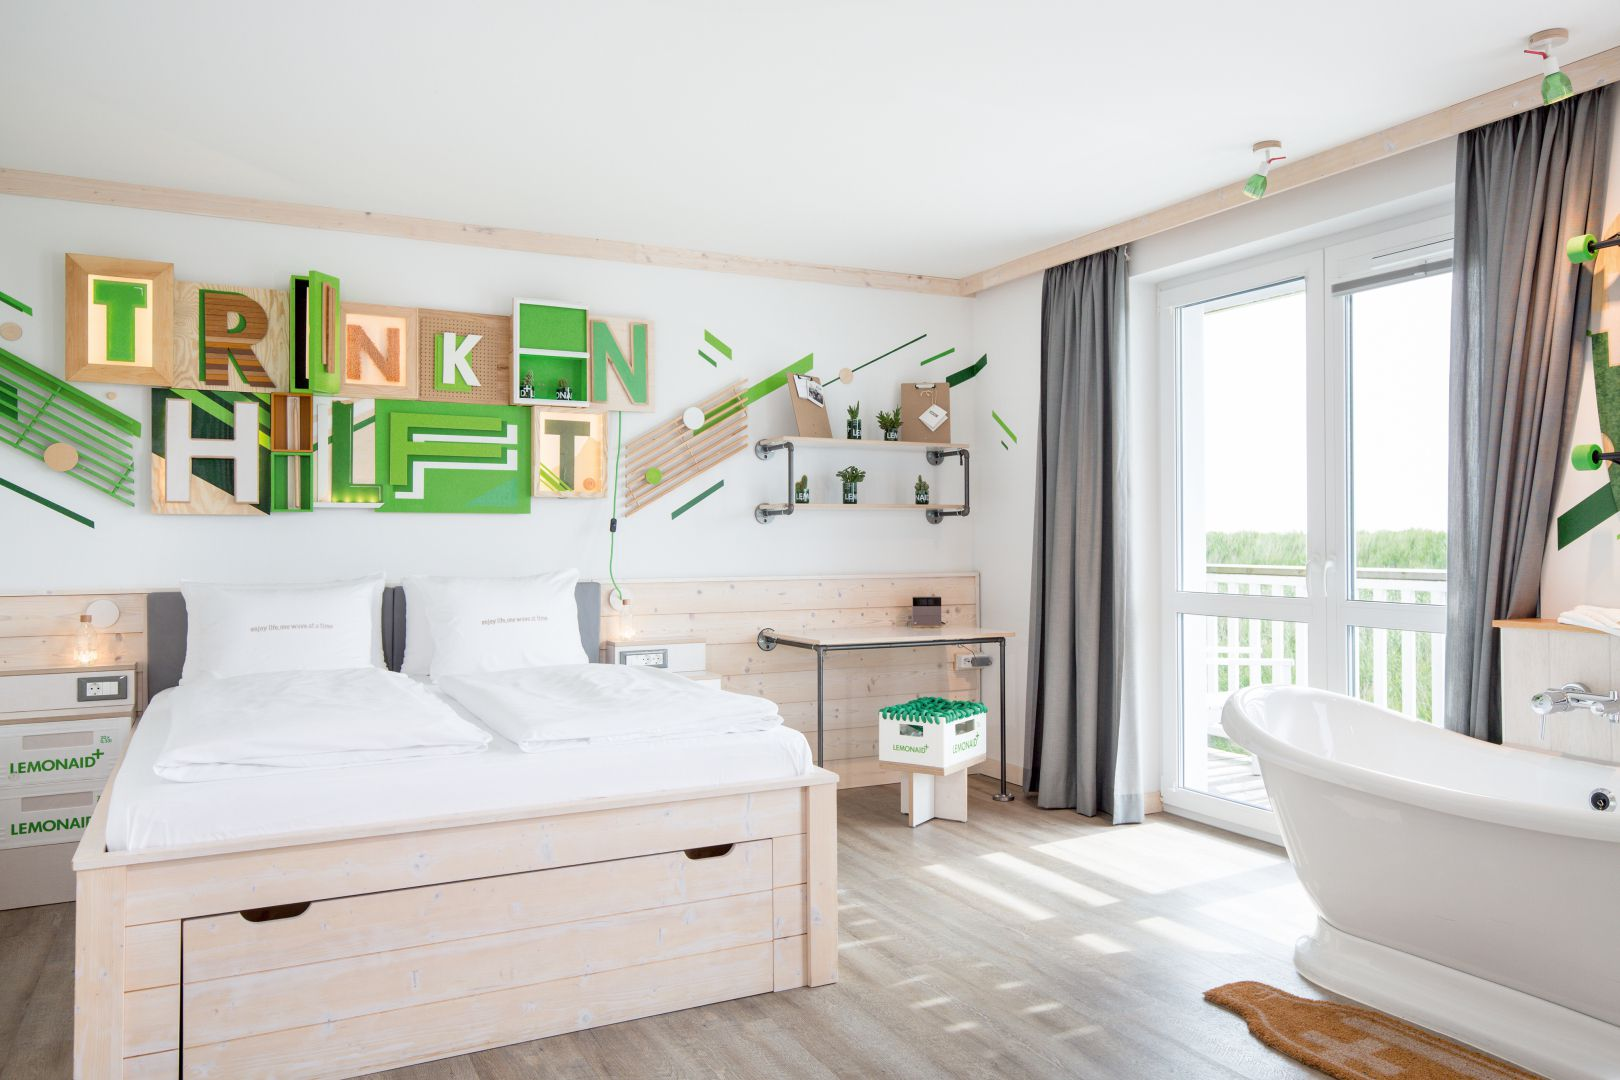 lemonaid lodge beach motel st peter ording. Black Bedroom Furniture Sets. Home Design Ideas